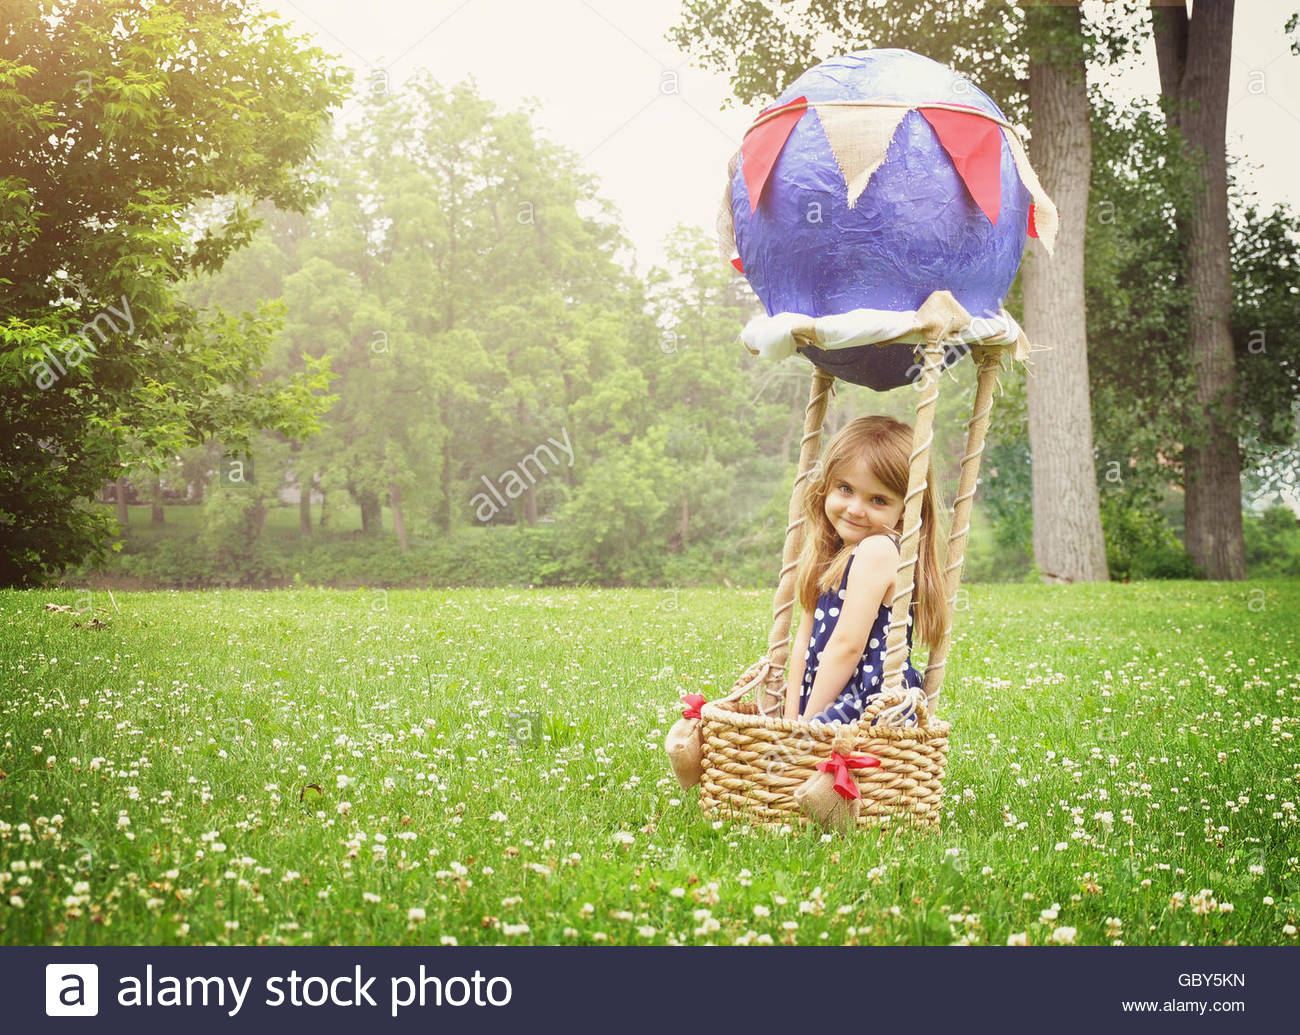 A child is sitting in a hot air balloon basket pretending to travel and fly  for a creativity or imagination concept. - Stock Image